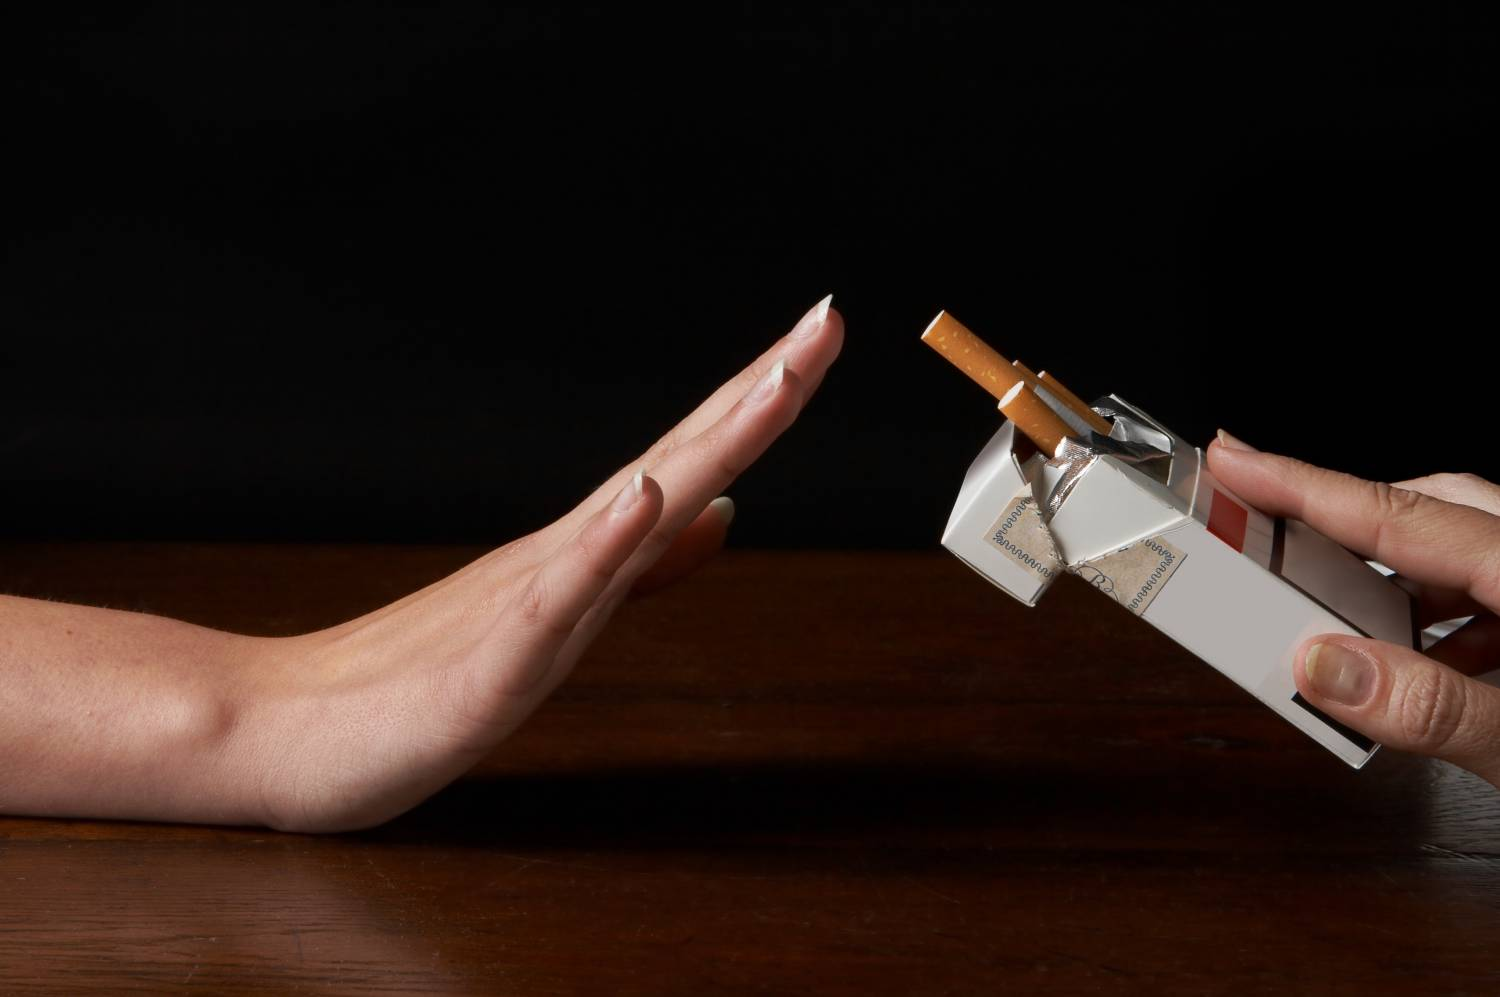 Can Quitting Smoking Assist in Preventing Diabetes?